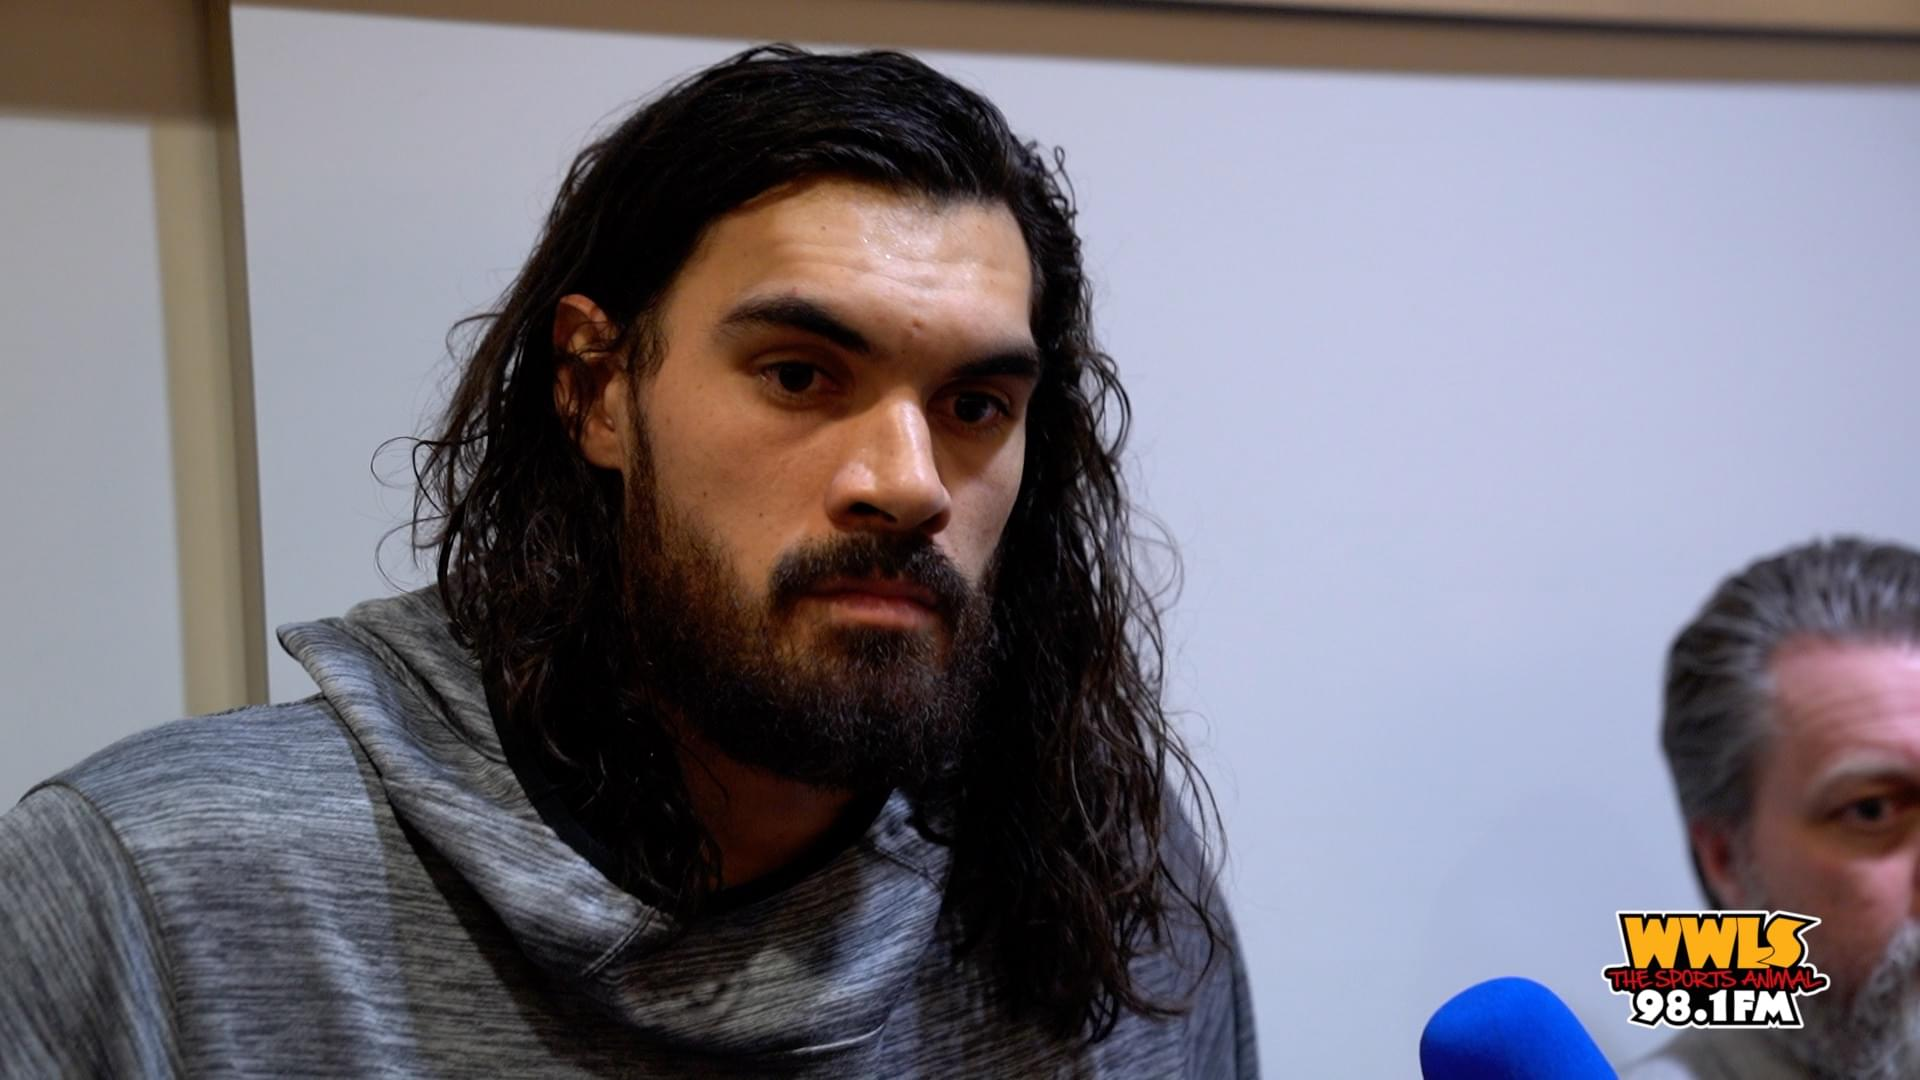 [WATCH] Steven Adams Discusses Win Over Knicks